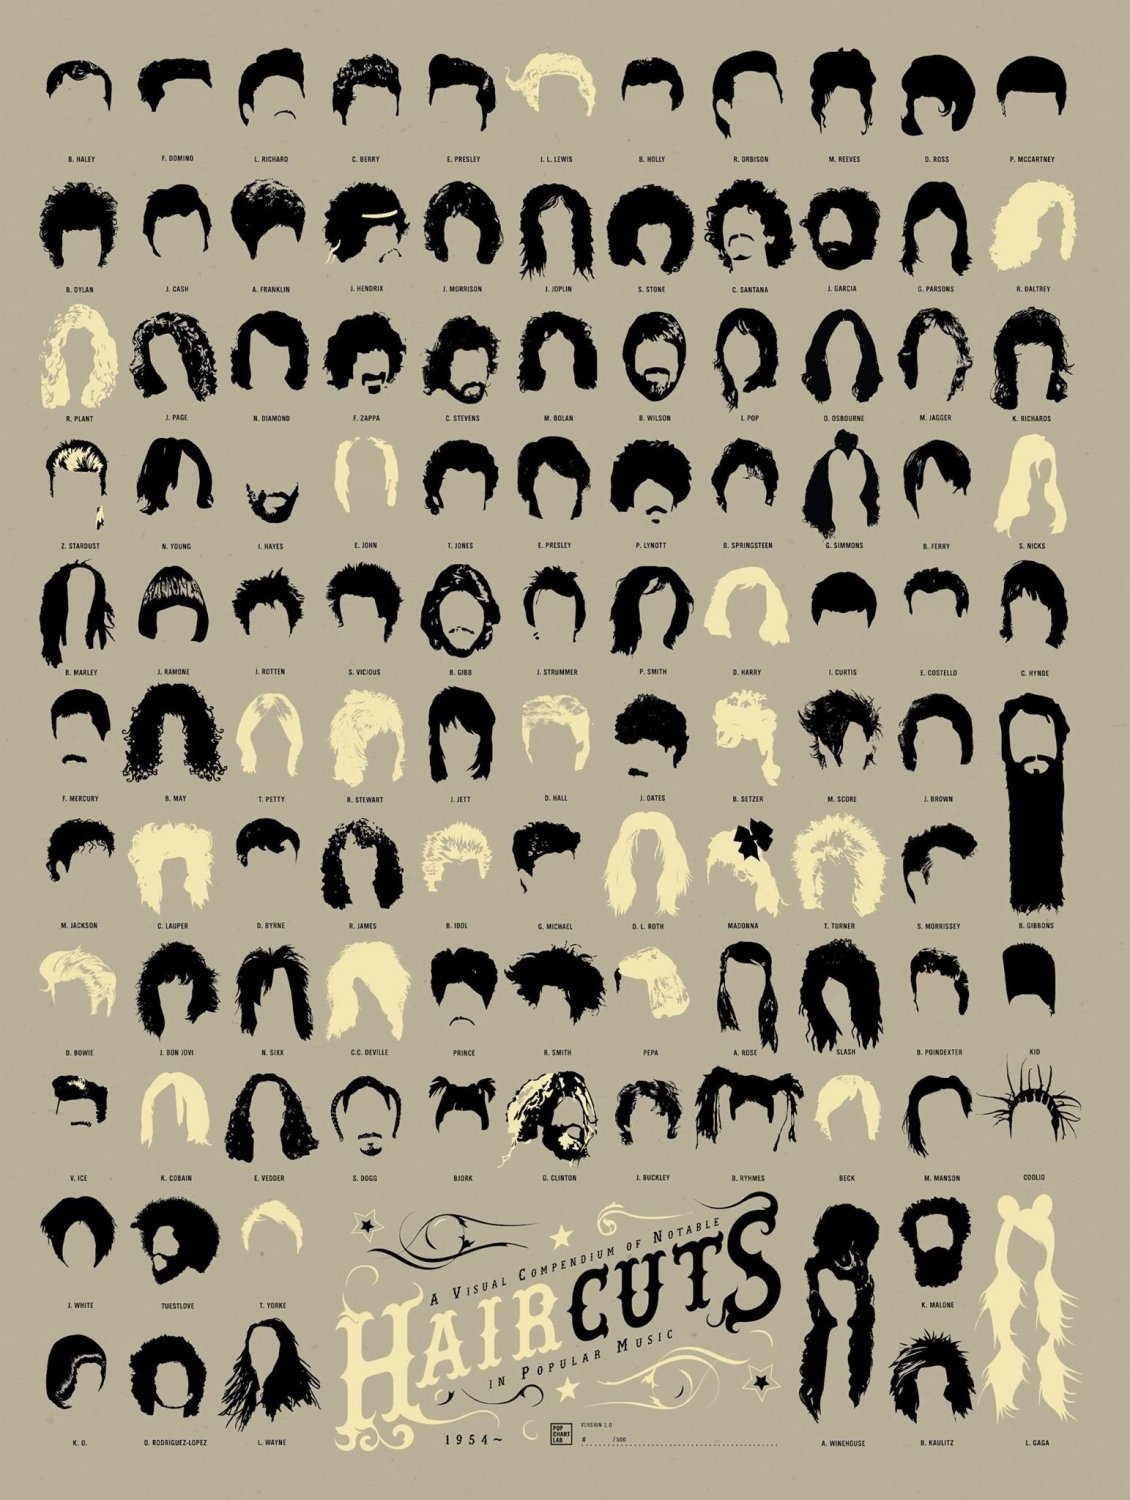 A Visual Compendium of Notable Haircuts in Popular Music Chart 13x19 inches Poster Print